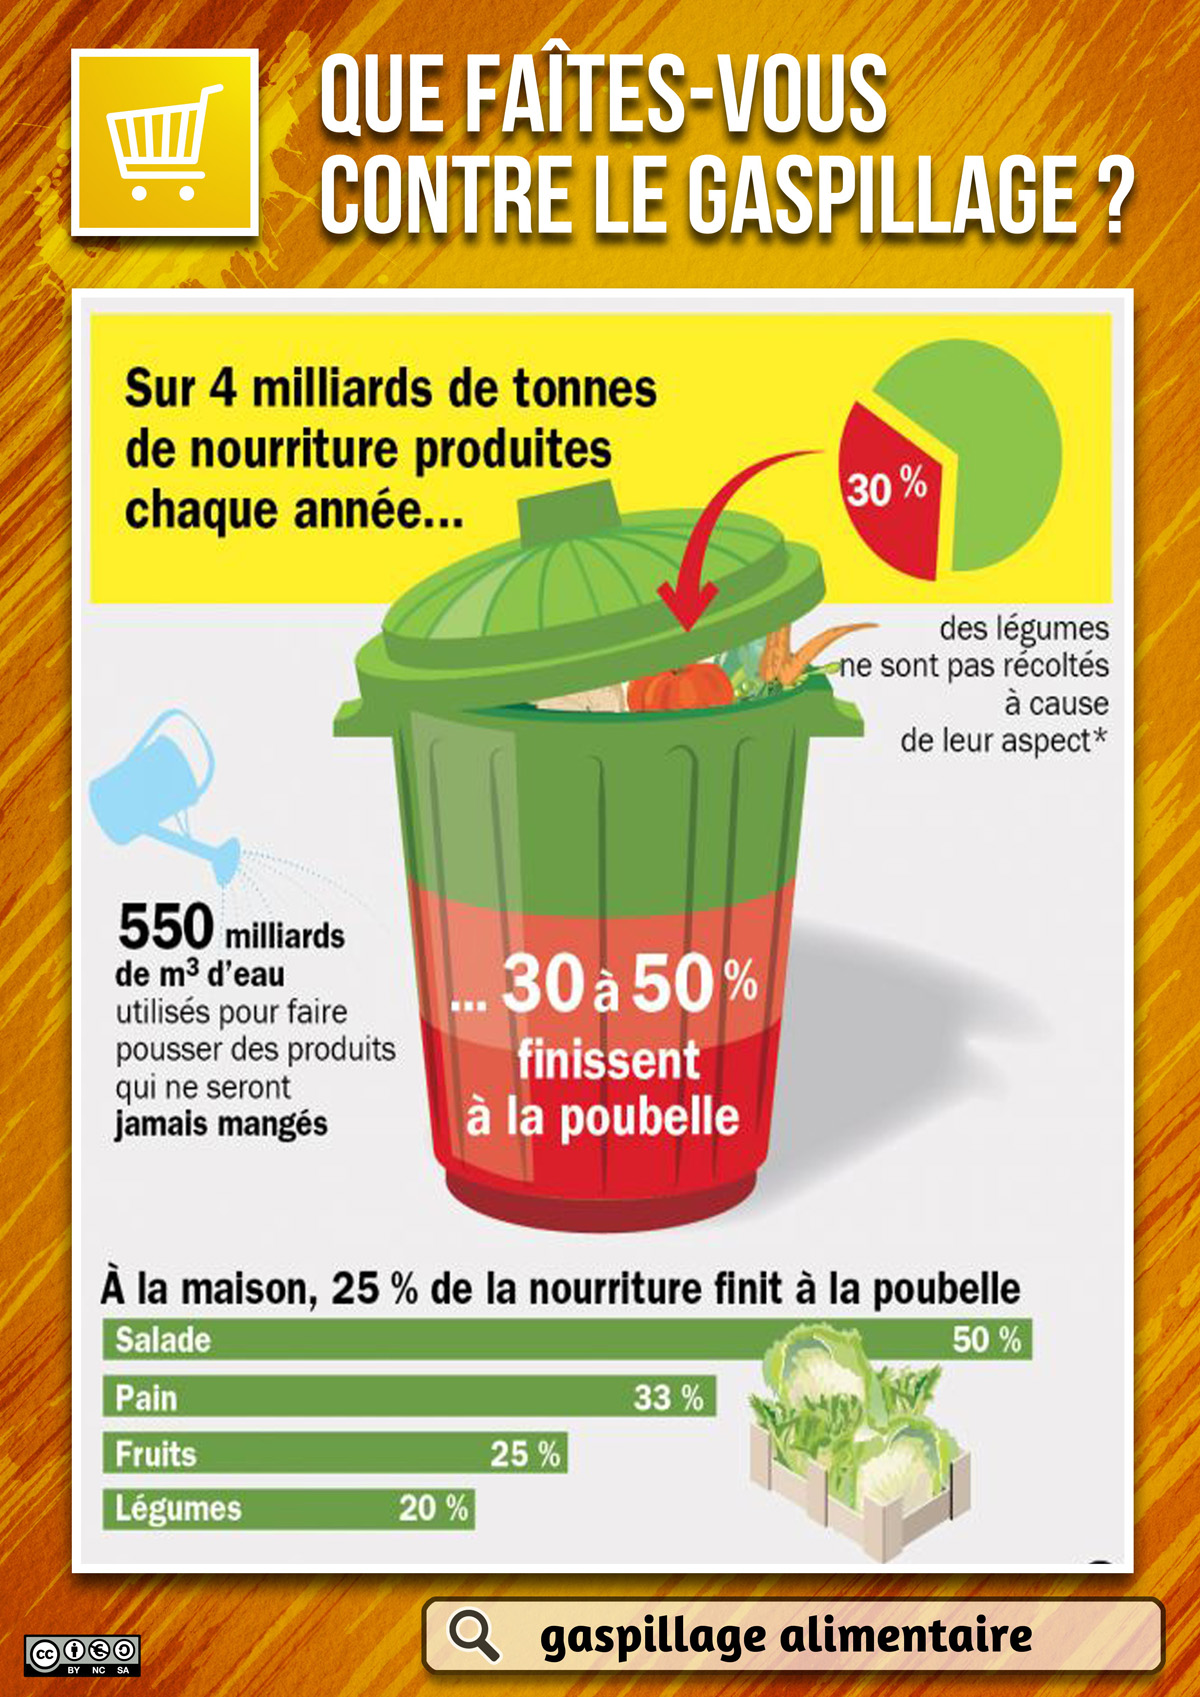 http://www.informaction.info/sites/default/files/images/cm6_-_gaspillage_alimentaire.jpg